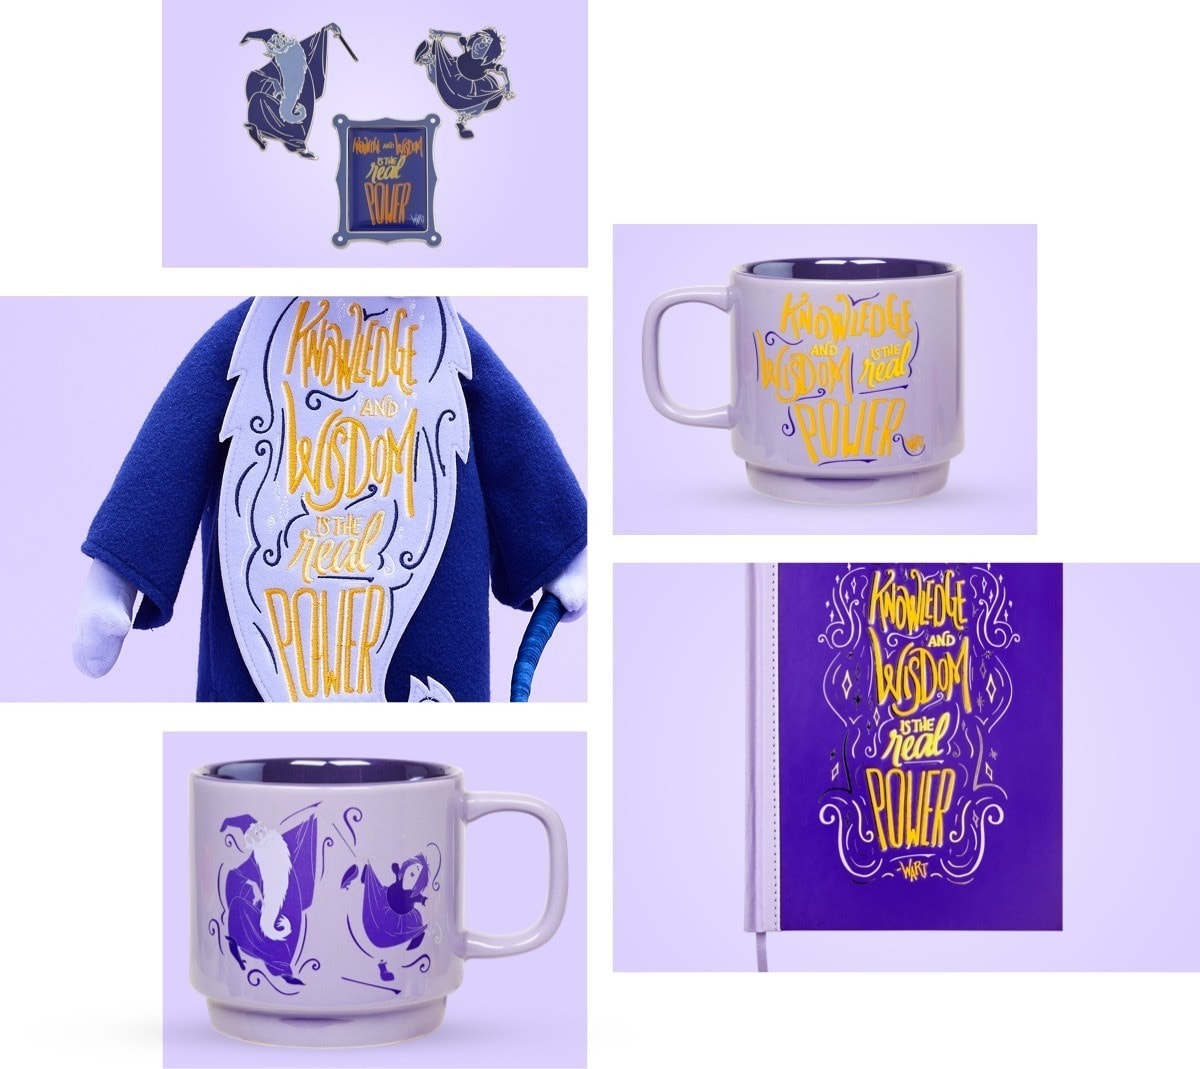 Merlin inspired Soft Toy, Notebook, Pin Set and Mug